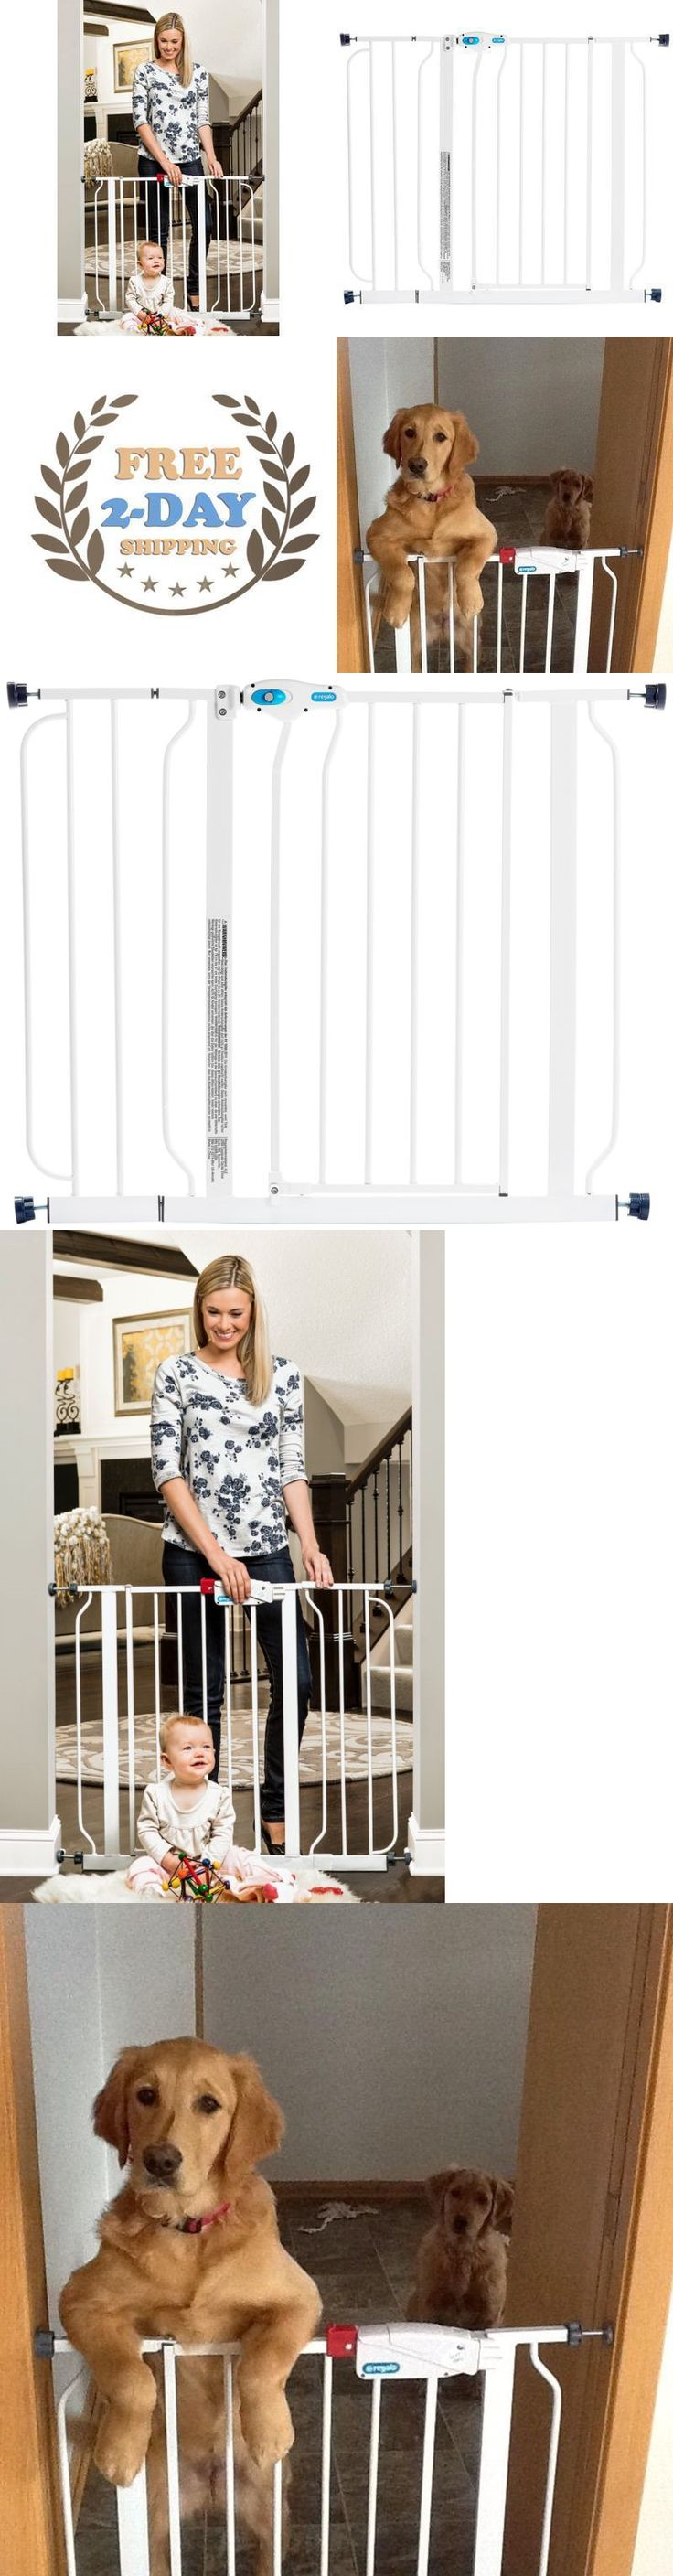 Other Baby Proofing 20434: Baby Safety Gate Walk Thru Easy Step Toddler Pet Child Stairway Infant Dog Fence -> BUY IT NOW ONLY: $42.21 on eBay!